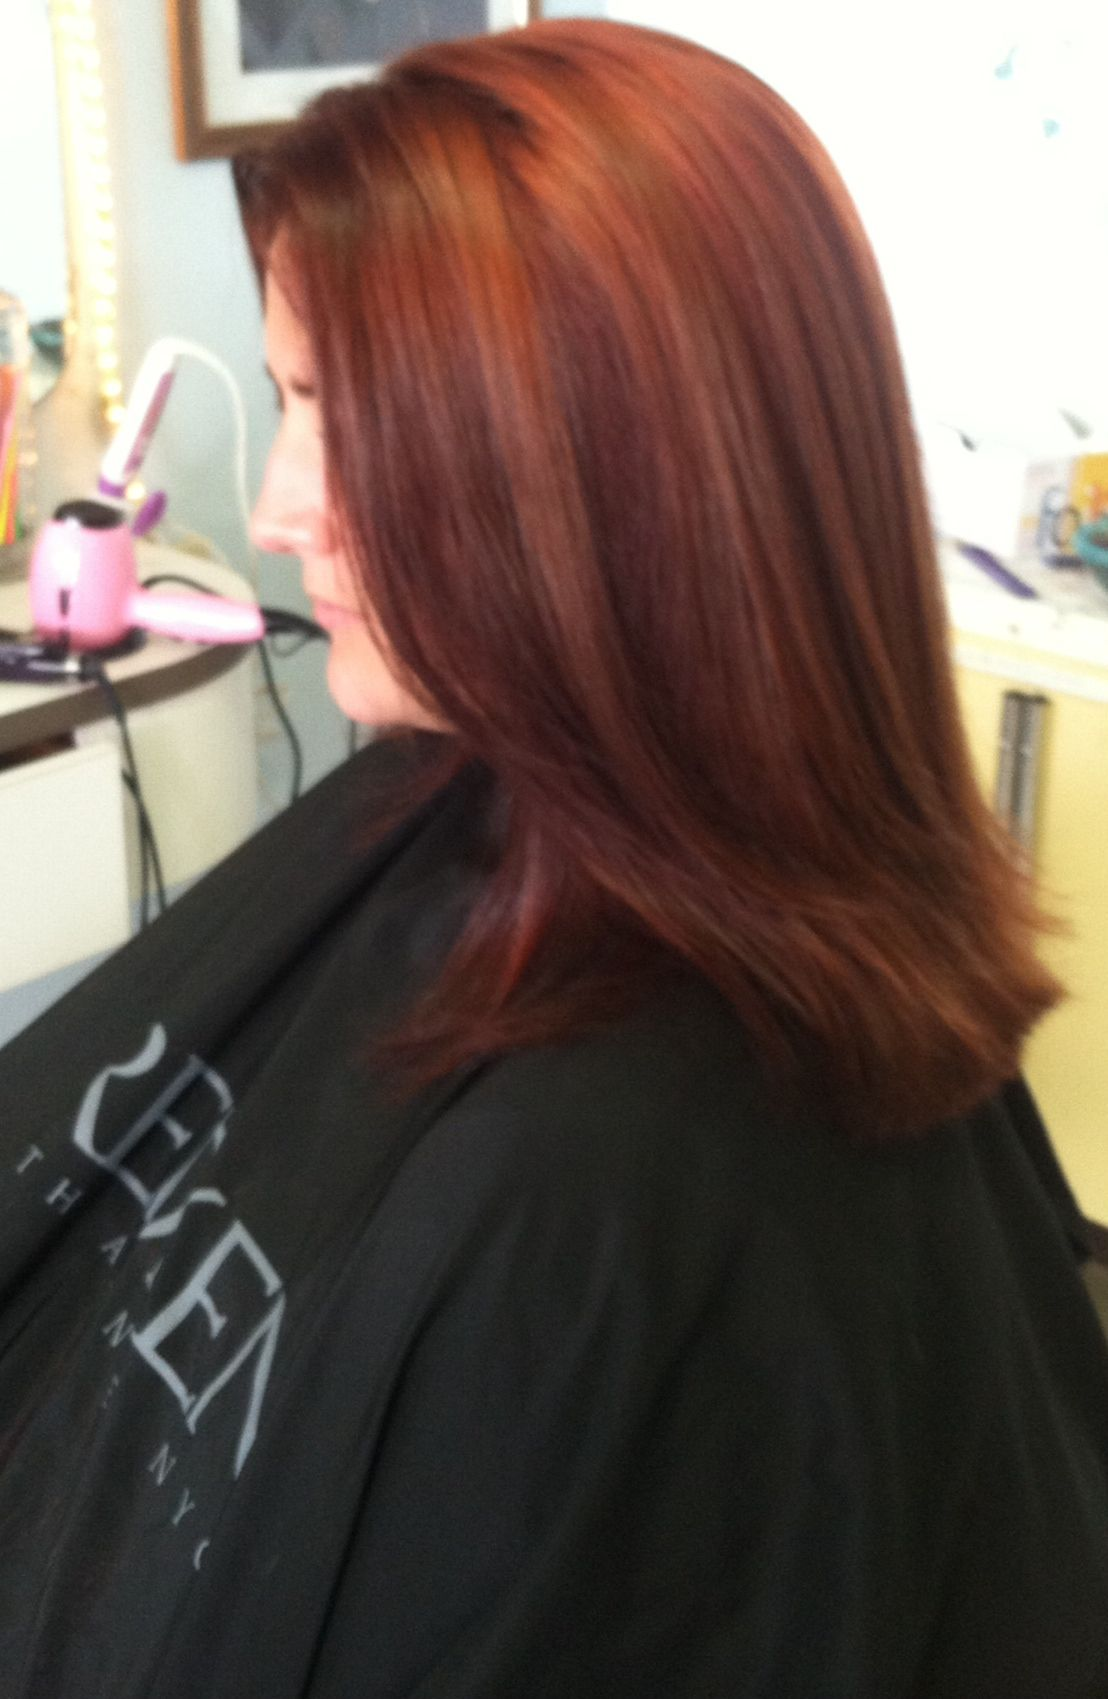 Beautiful Redken Red Bottom Half Of Her Hair 1 2 5n And 6rr The Top Part Of Her Hair 6r I Used 10vol For 30mi Hair Color Formulas Thick Hair Styles Hair Color